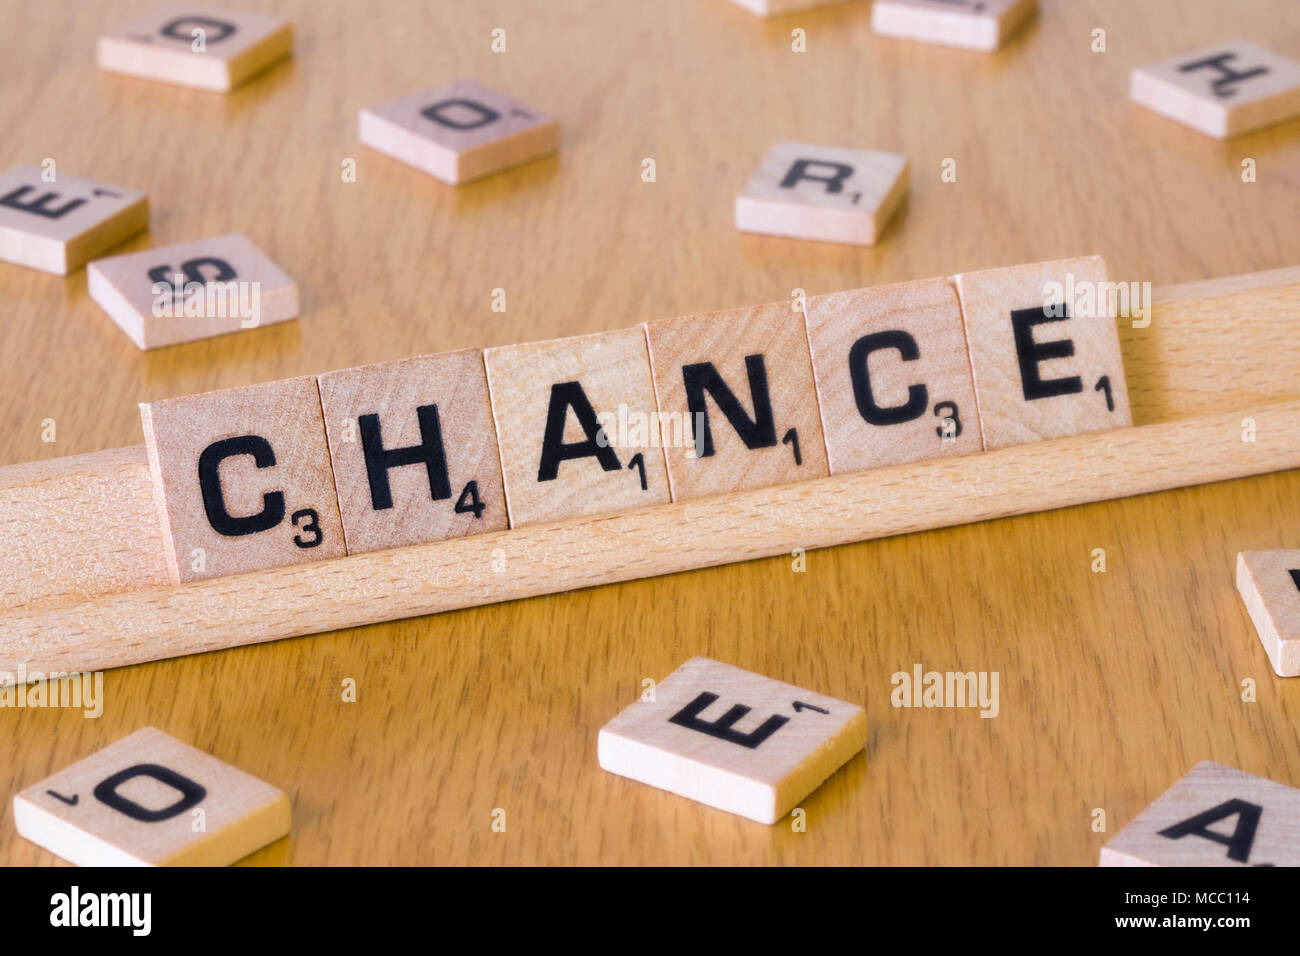 Scrabble letters spelling out the word Chance - Stock Image